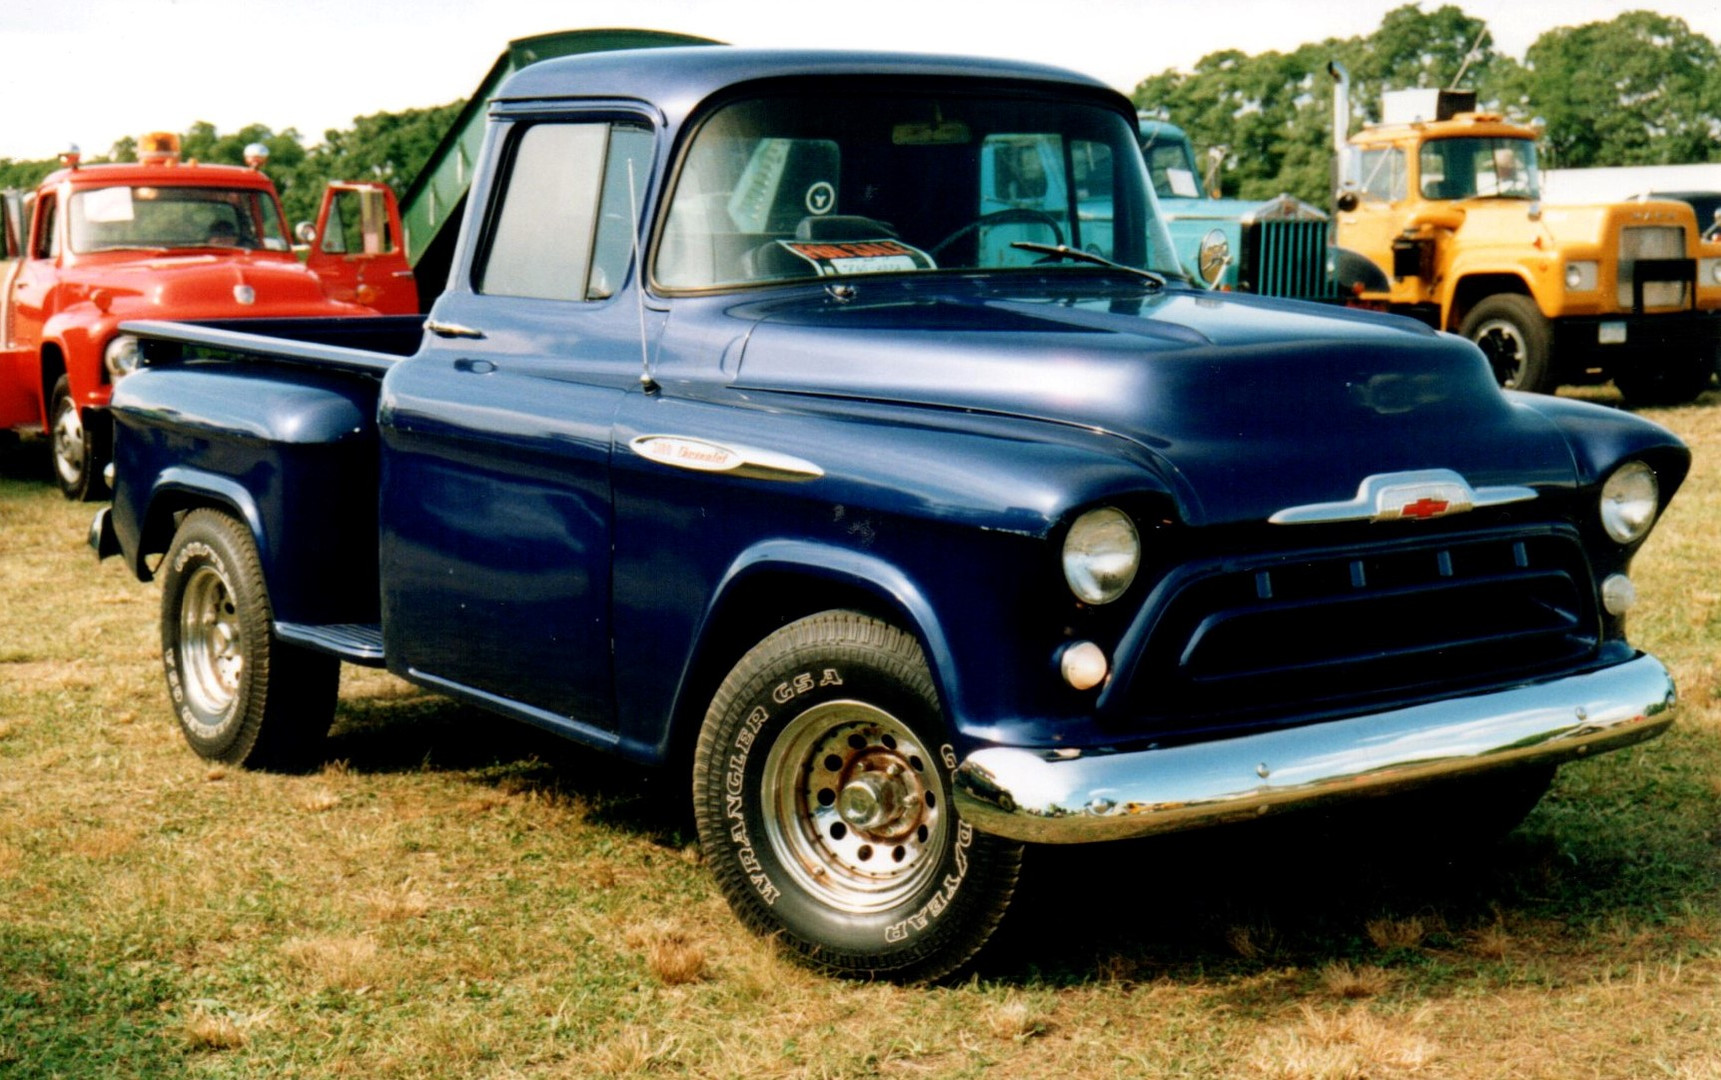 1957 Chevrolet 3100 pickup - Robert Mohr